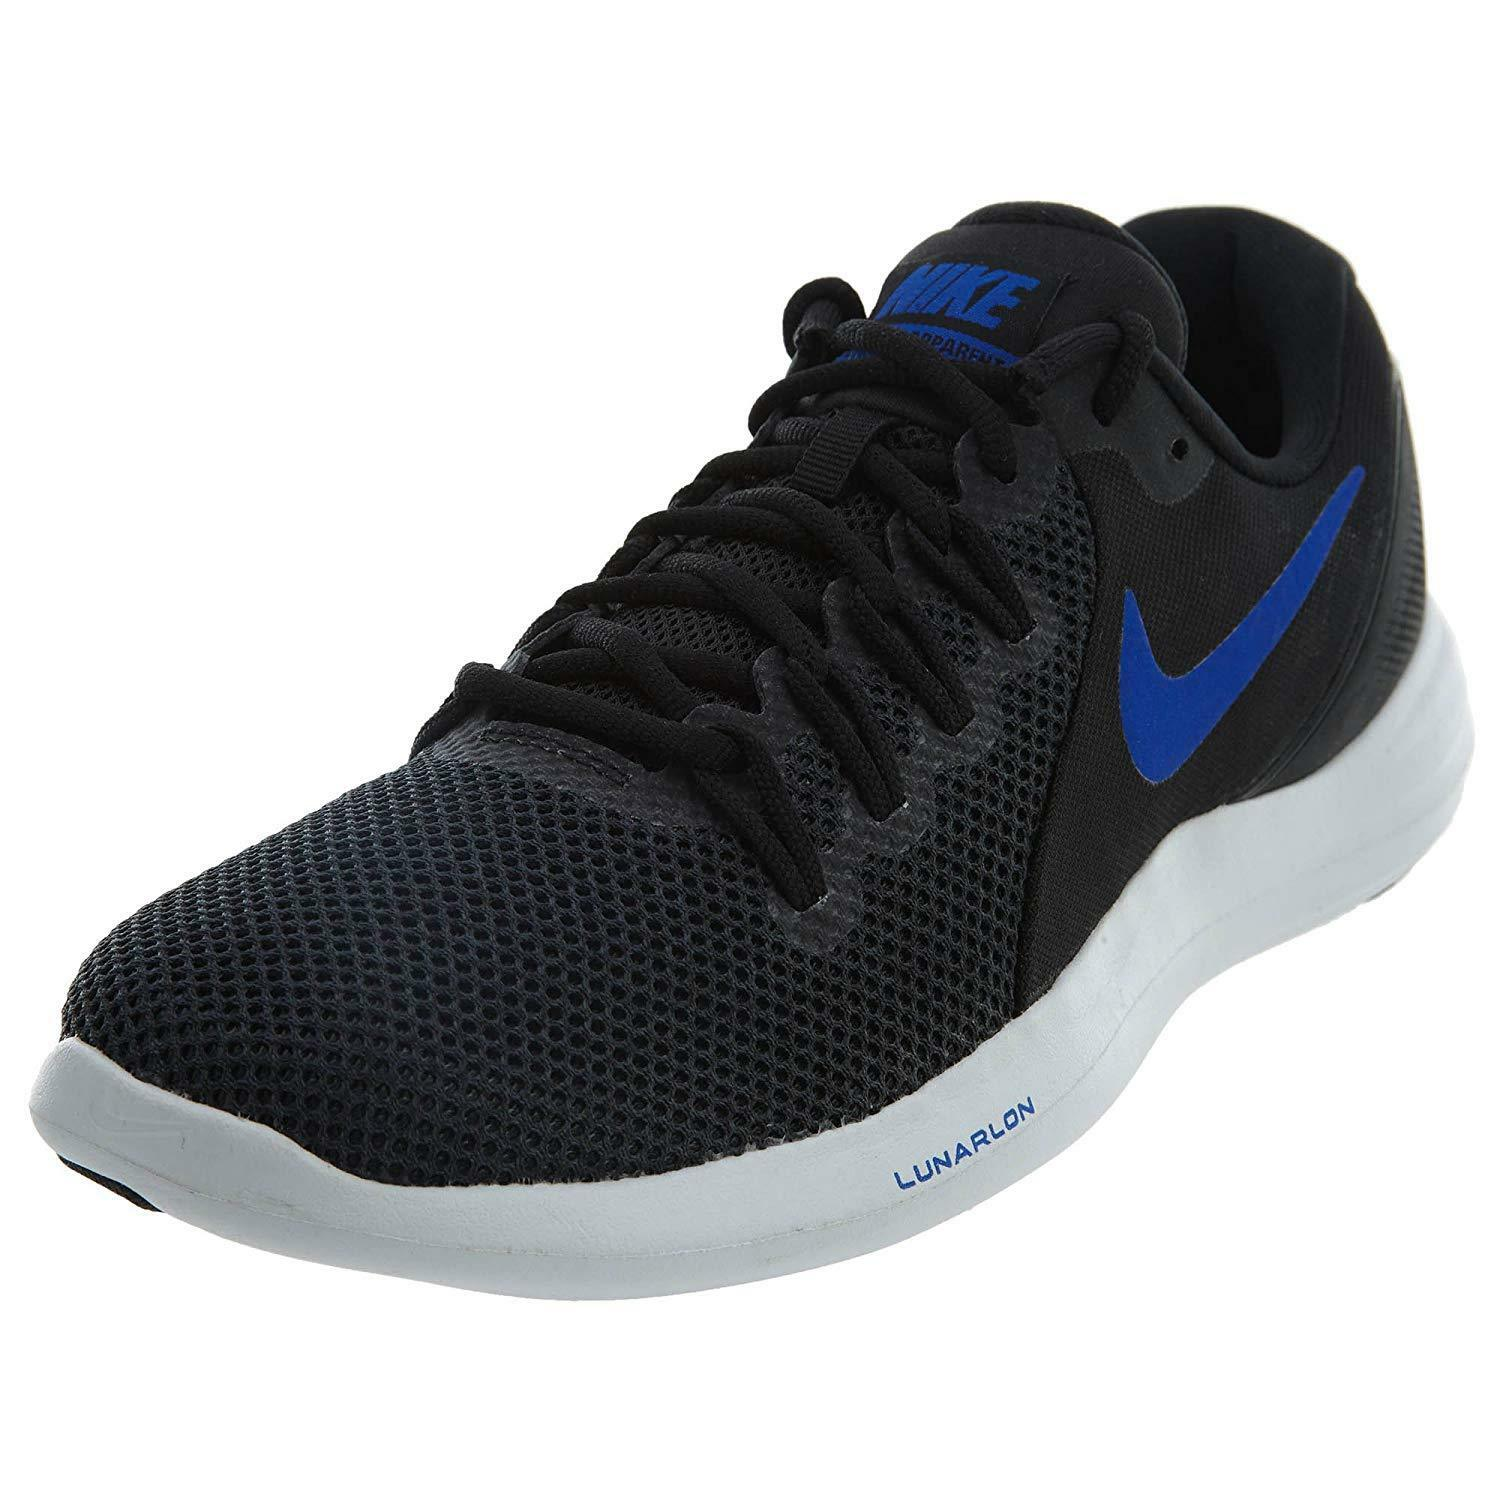 NIKE Men's Lunar Apparent Running Running Running shoes 908987 009 Size US 13 M New In Box a421f7